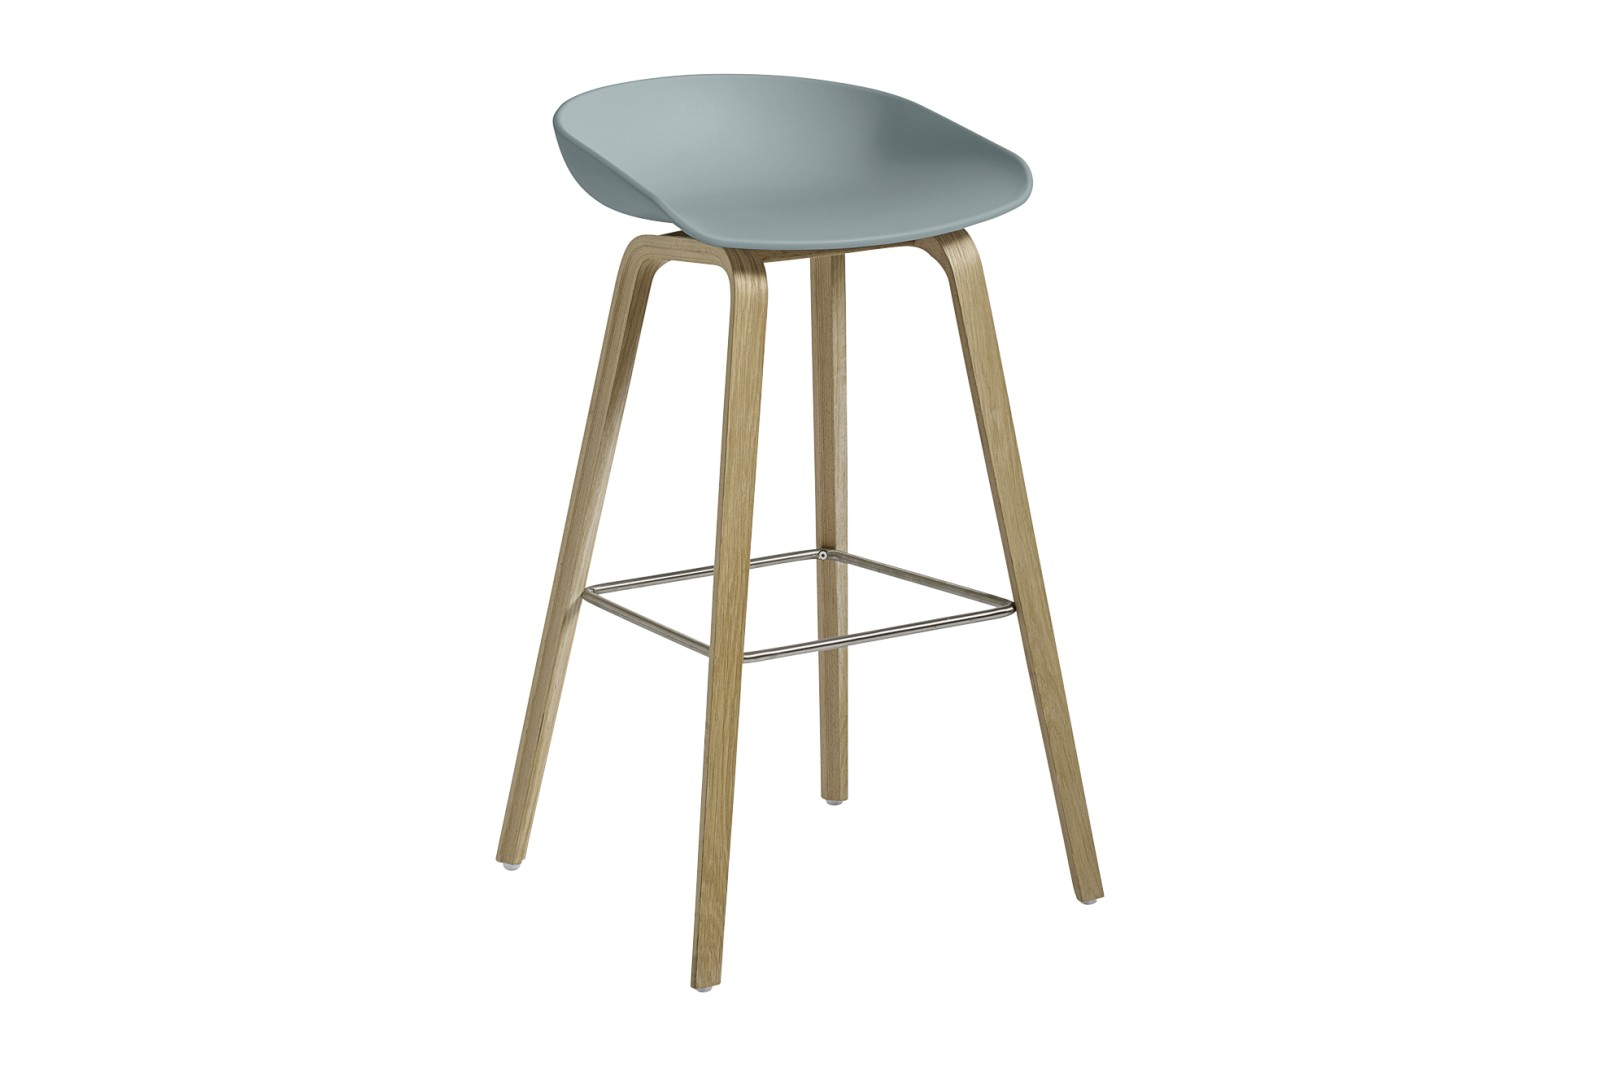 About A Stool AAS32 Soap Treated Oak Base, Dusty Blue Seat, High, Stainless Steel